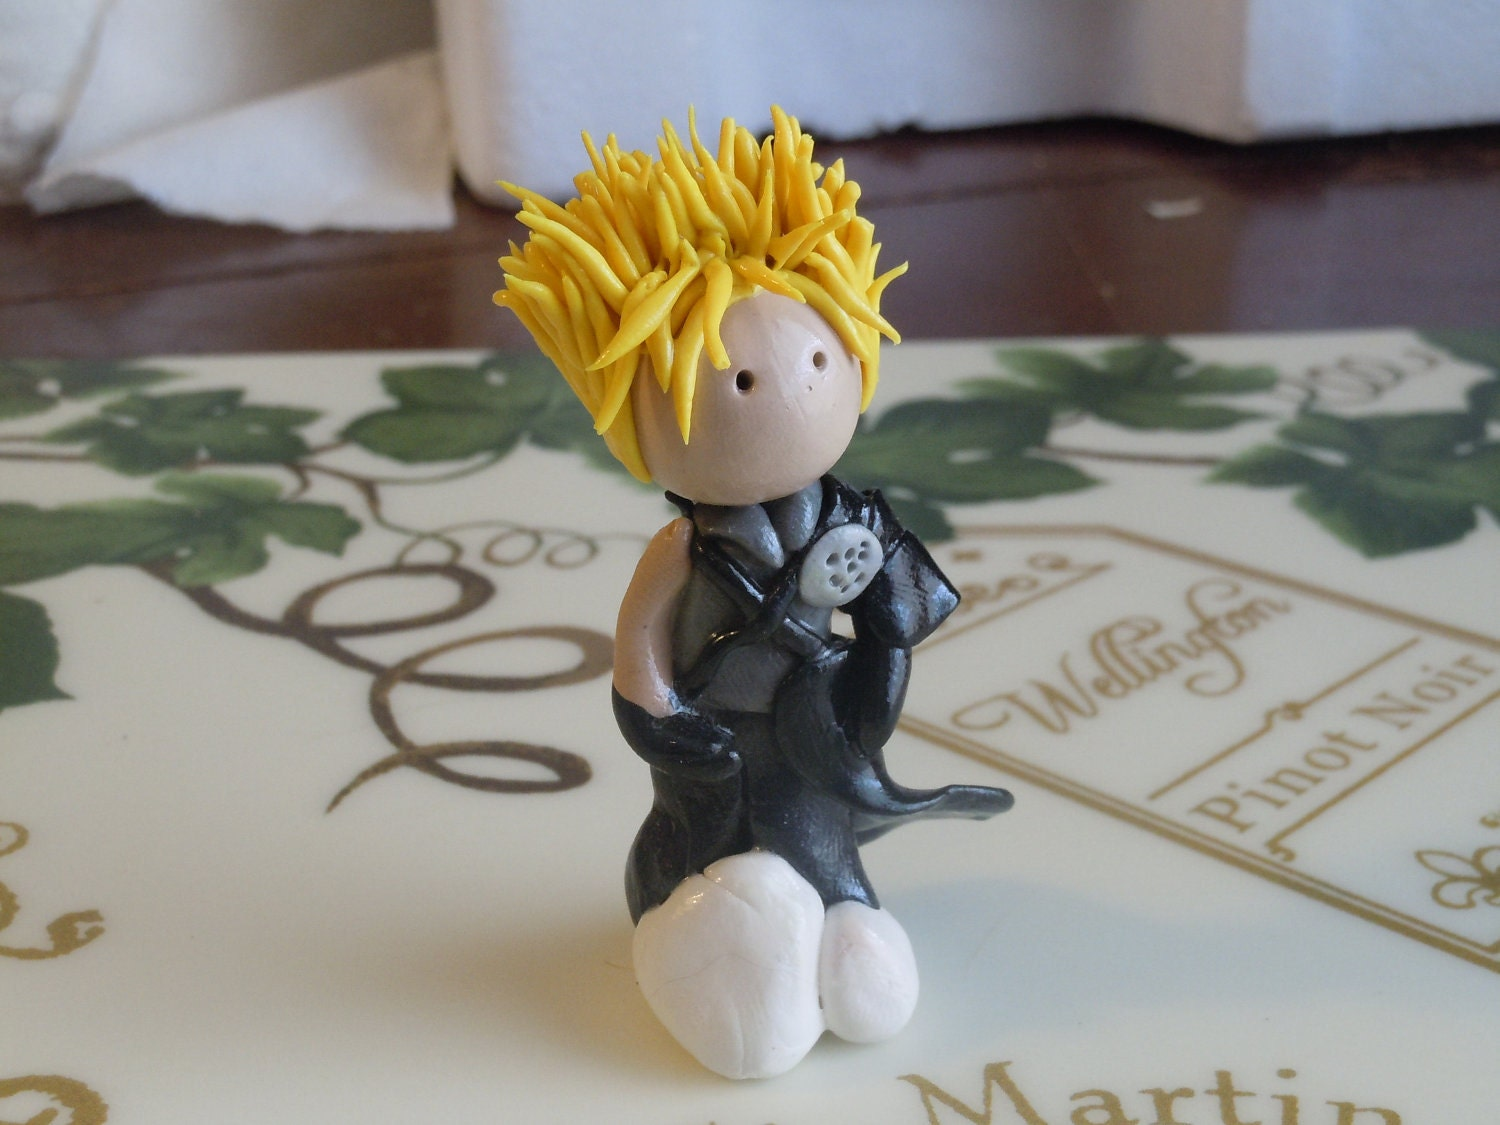 Cloud on a Cloud Final Fantasy 7 Chibi Figure